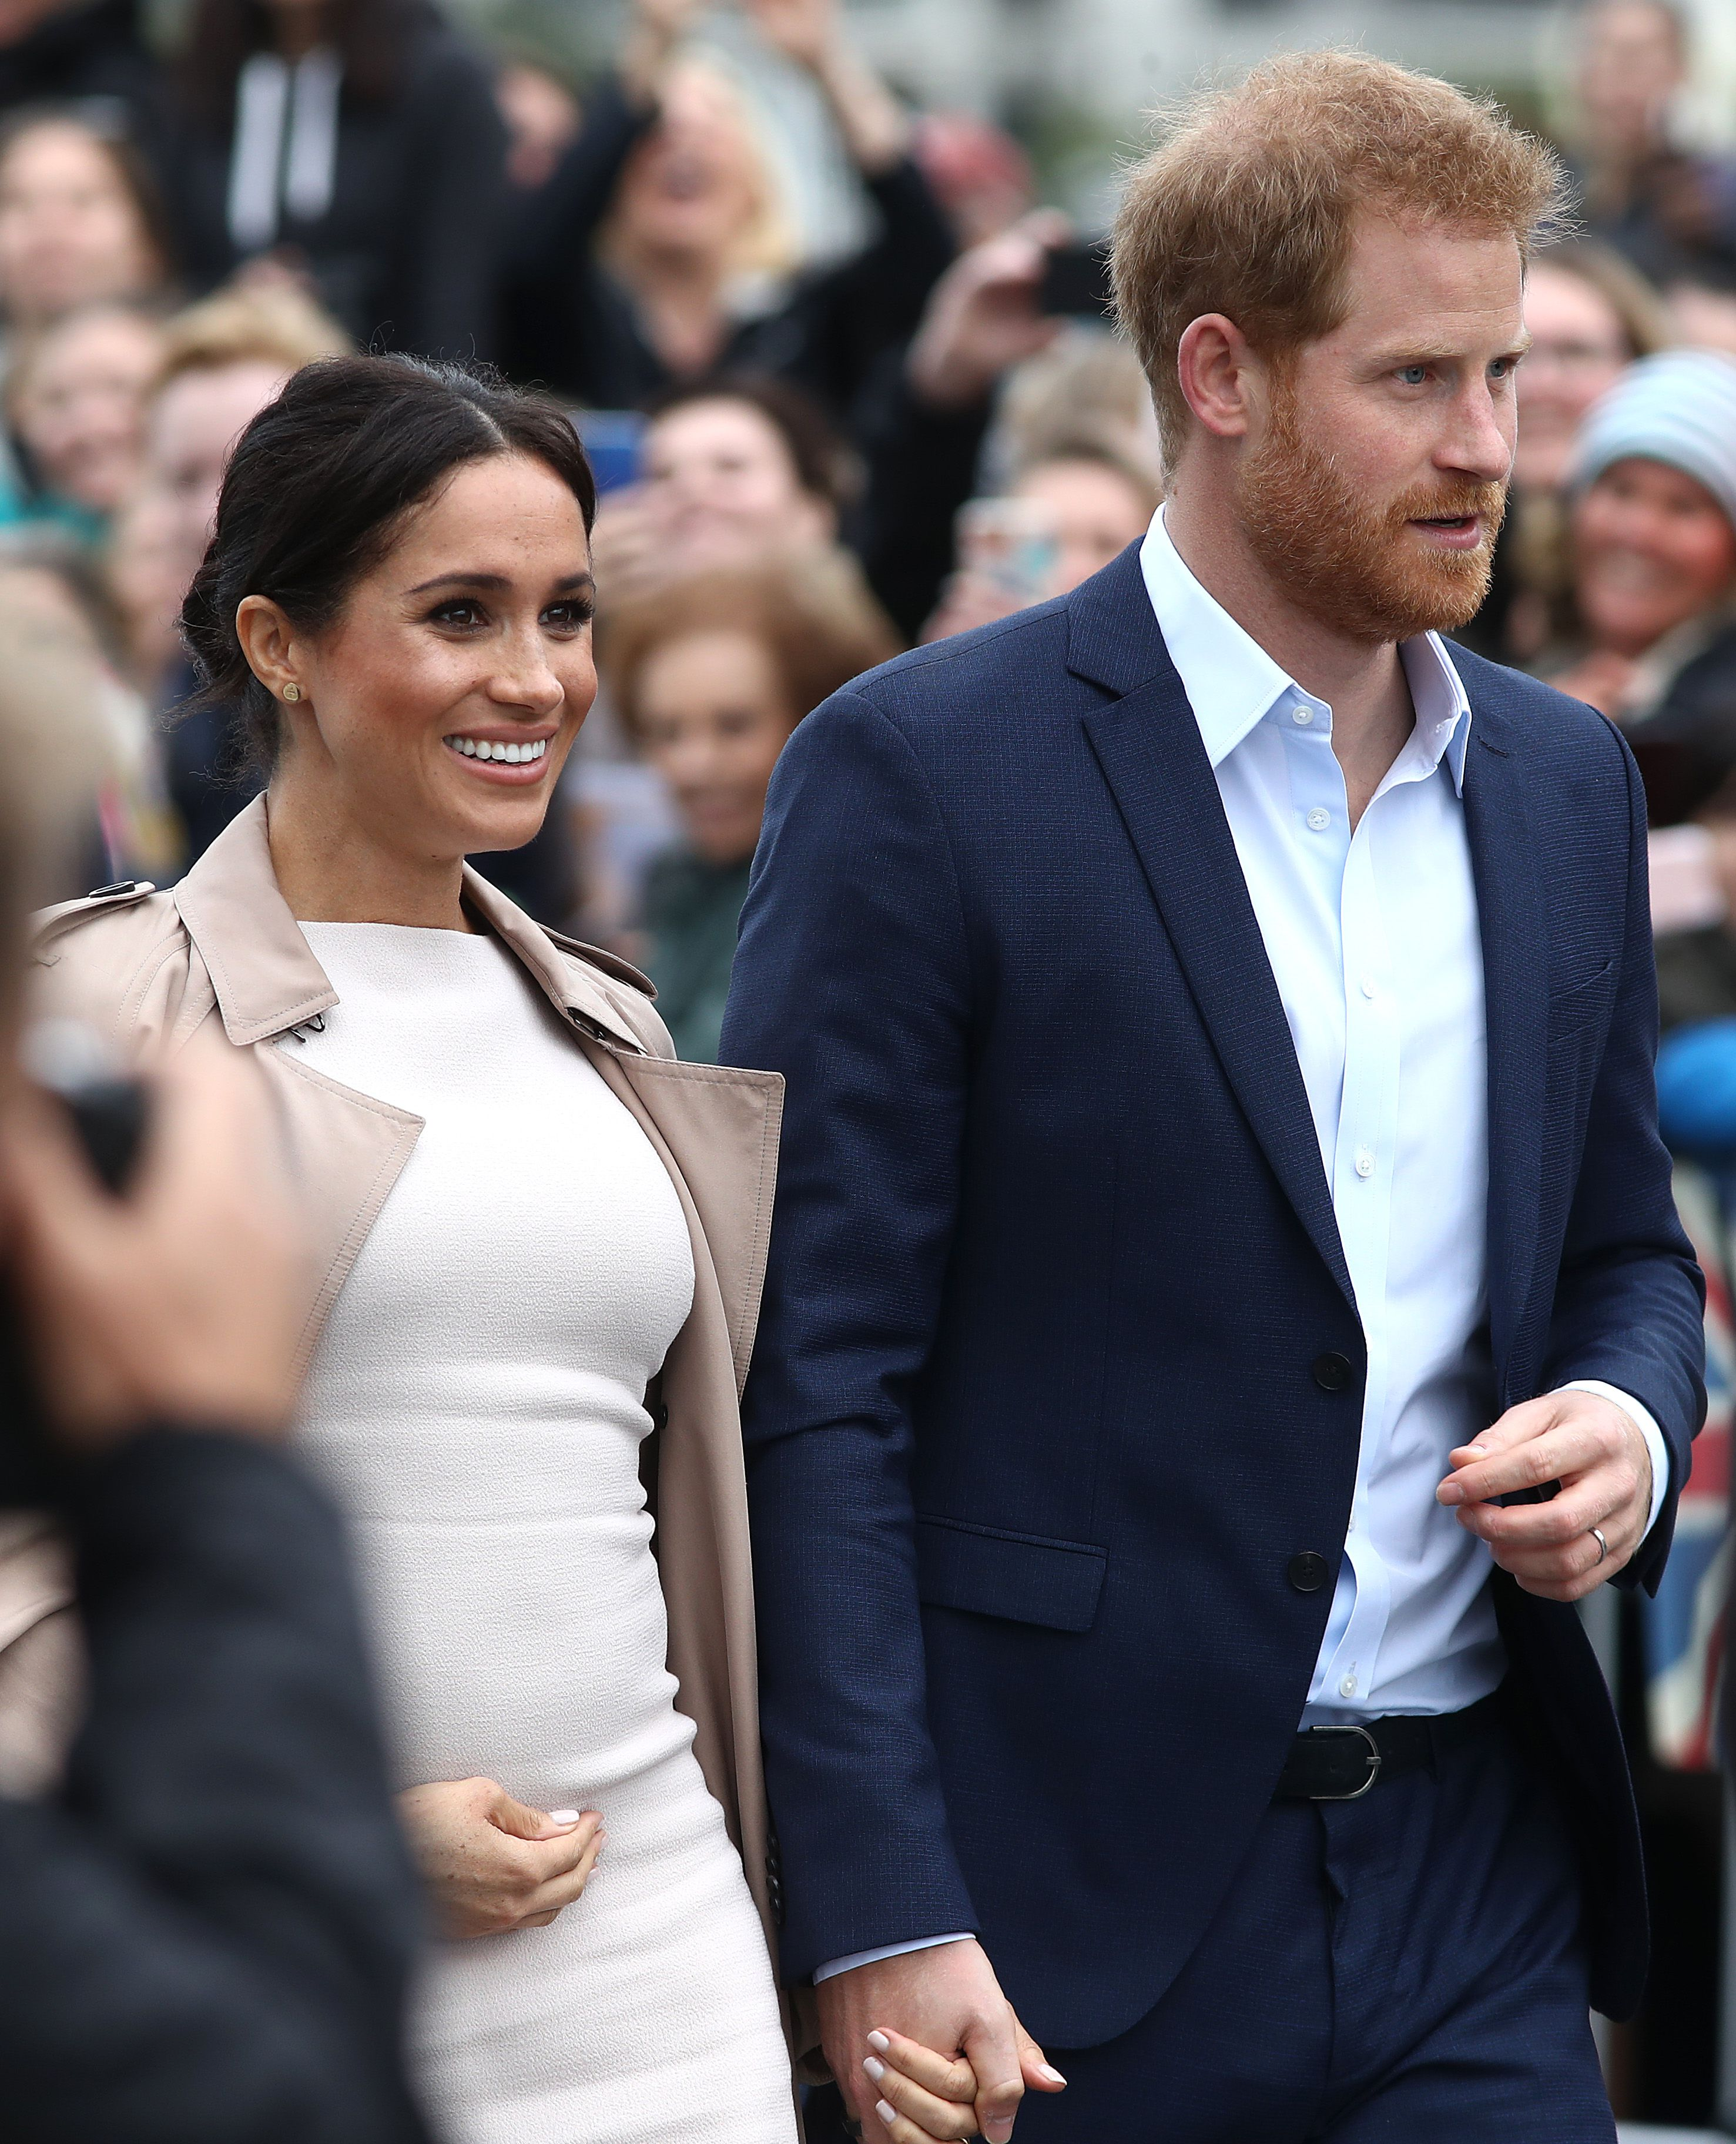 prince-harry-duke-of-sussex-and-meghan-duchess-of-sussex-news-photo-1061138602-1540918902